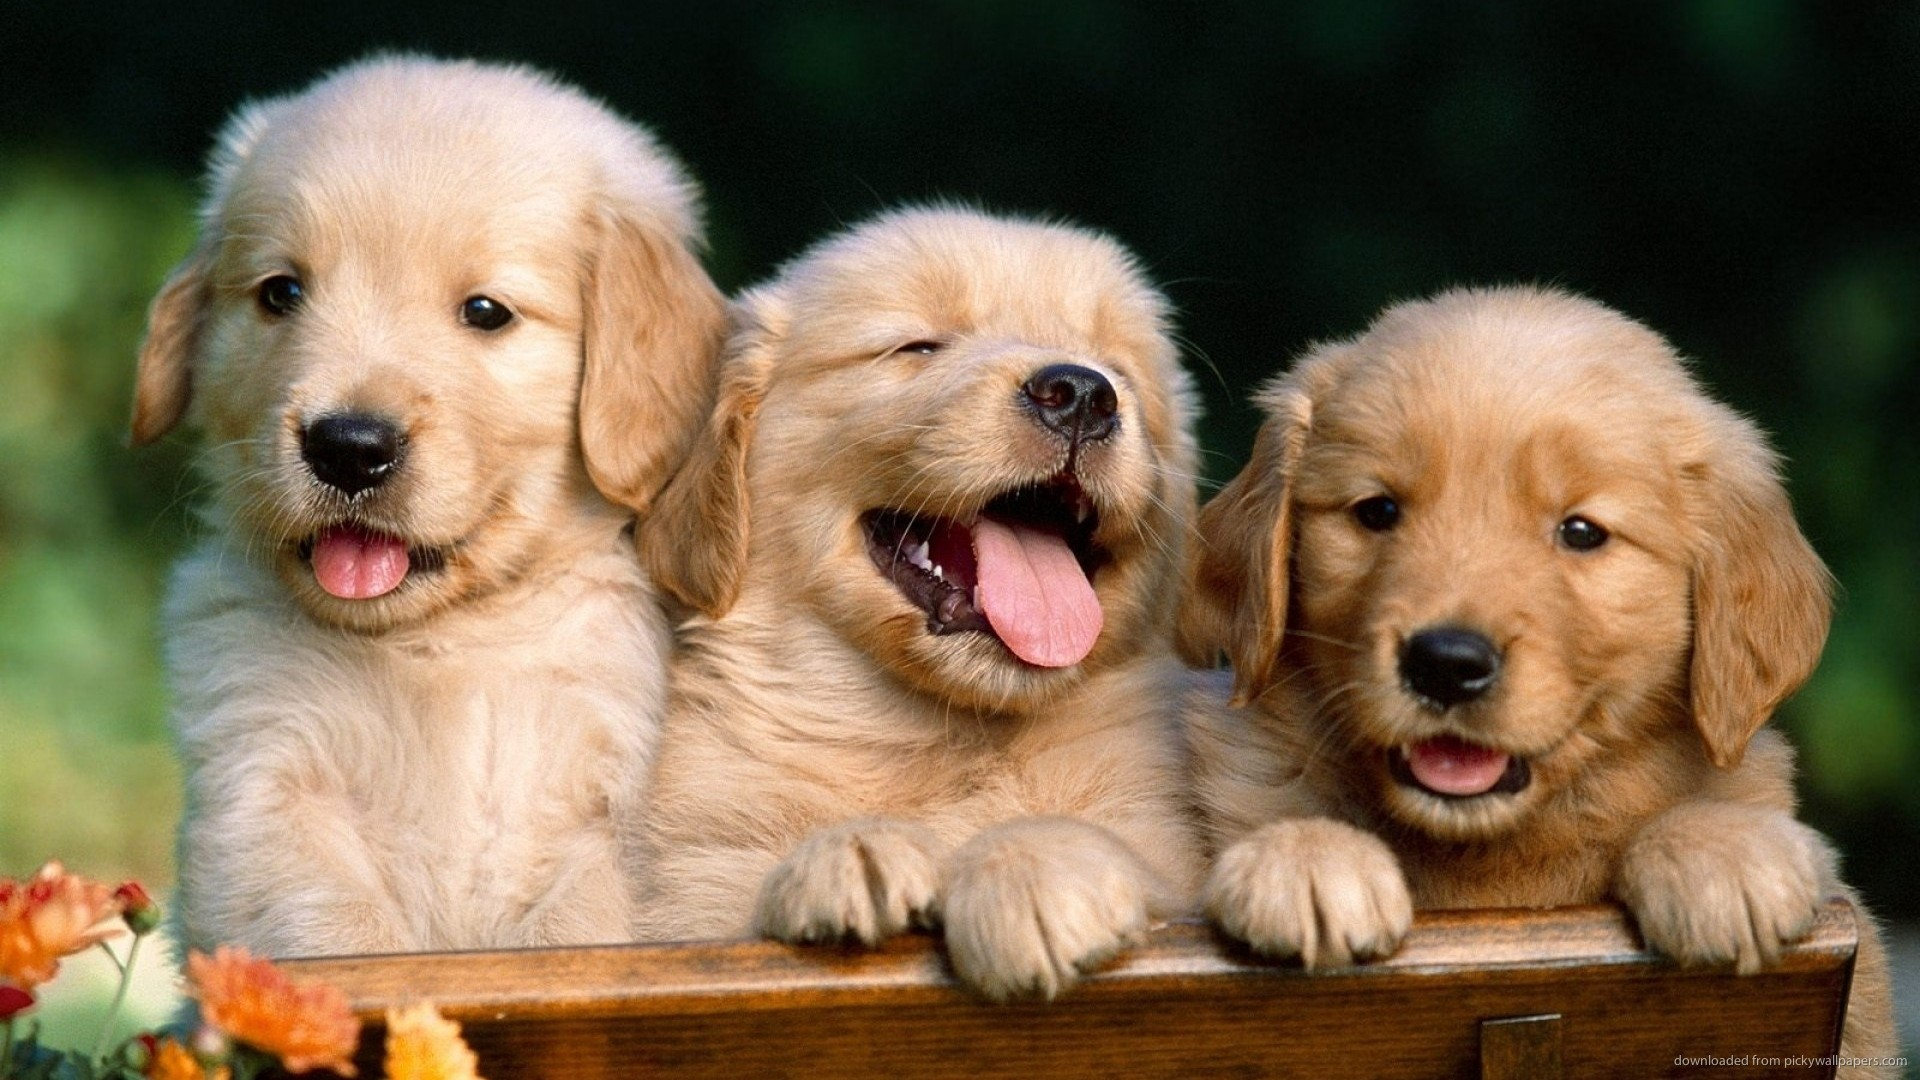 animals cute dogs nature puppy related wallpapers 1920x1080